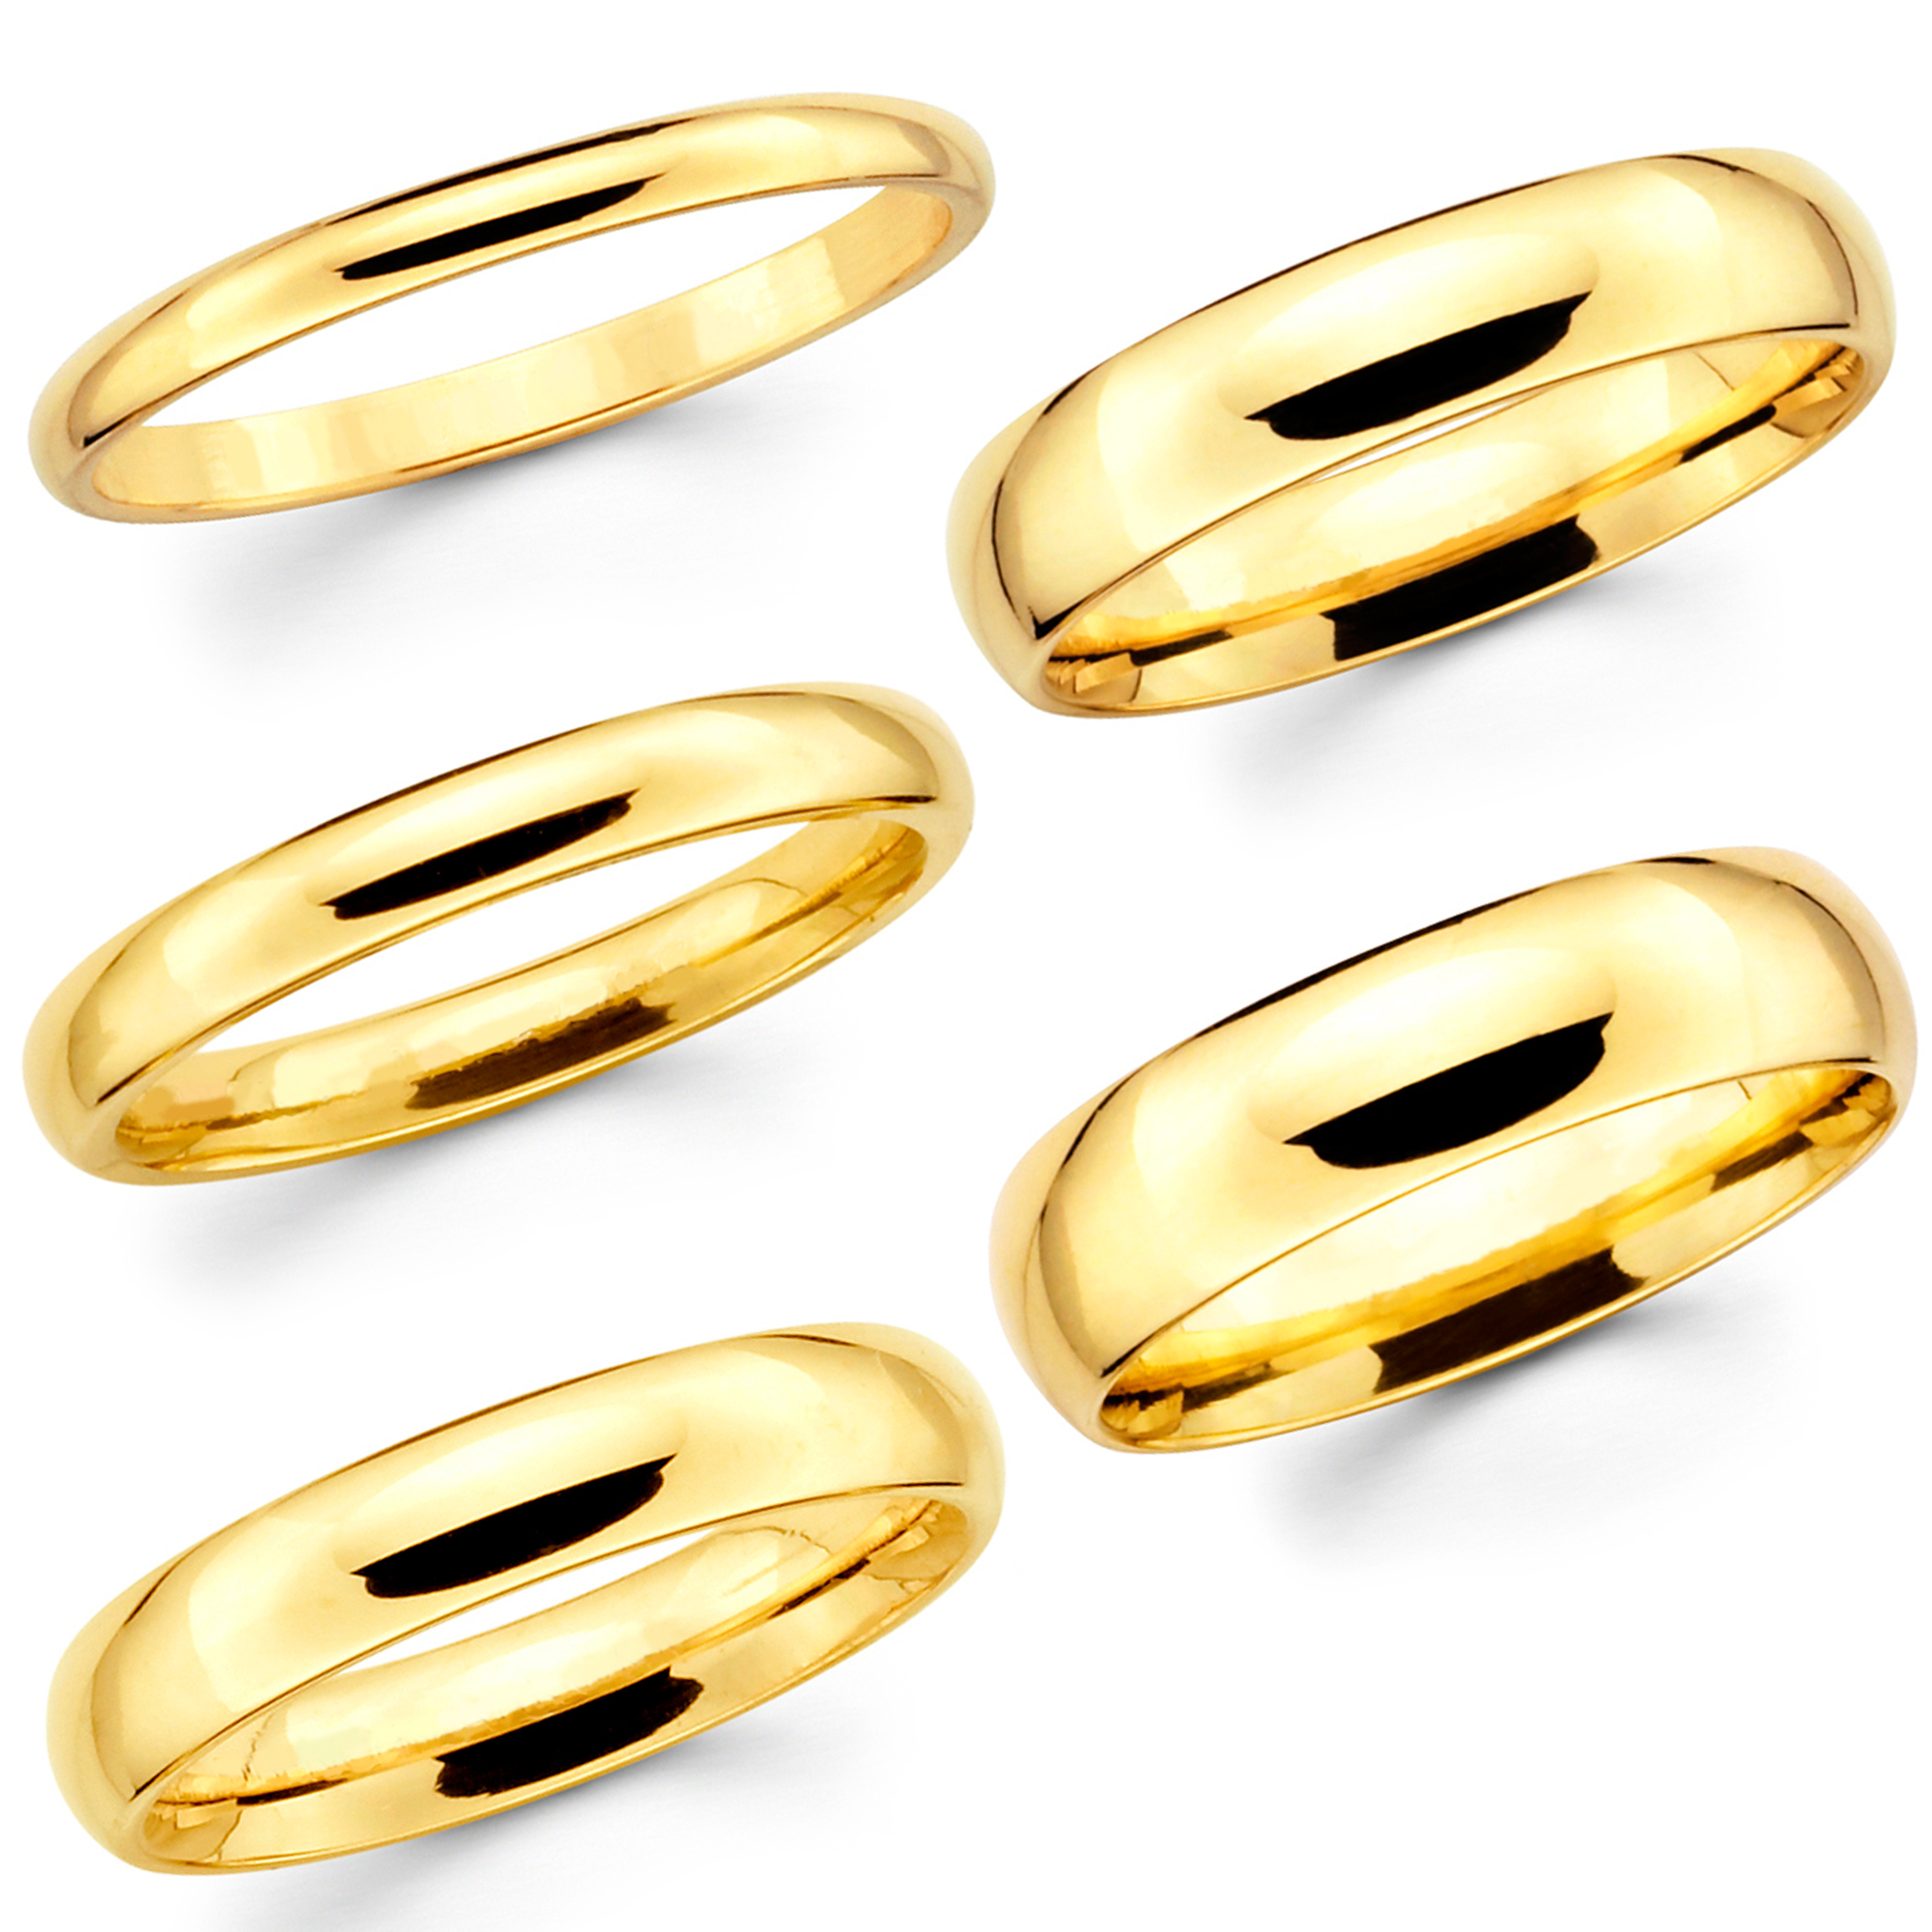 vintage gold ring engraved wedding listing bands band il mens zoom fullxfull wide design